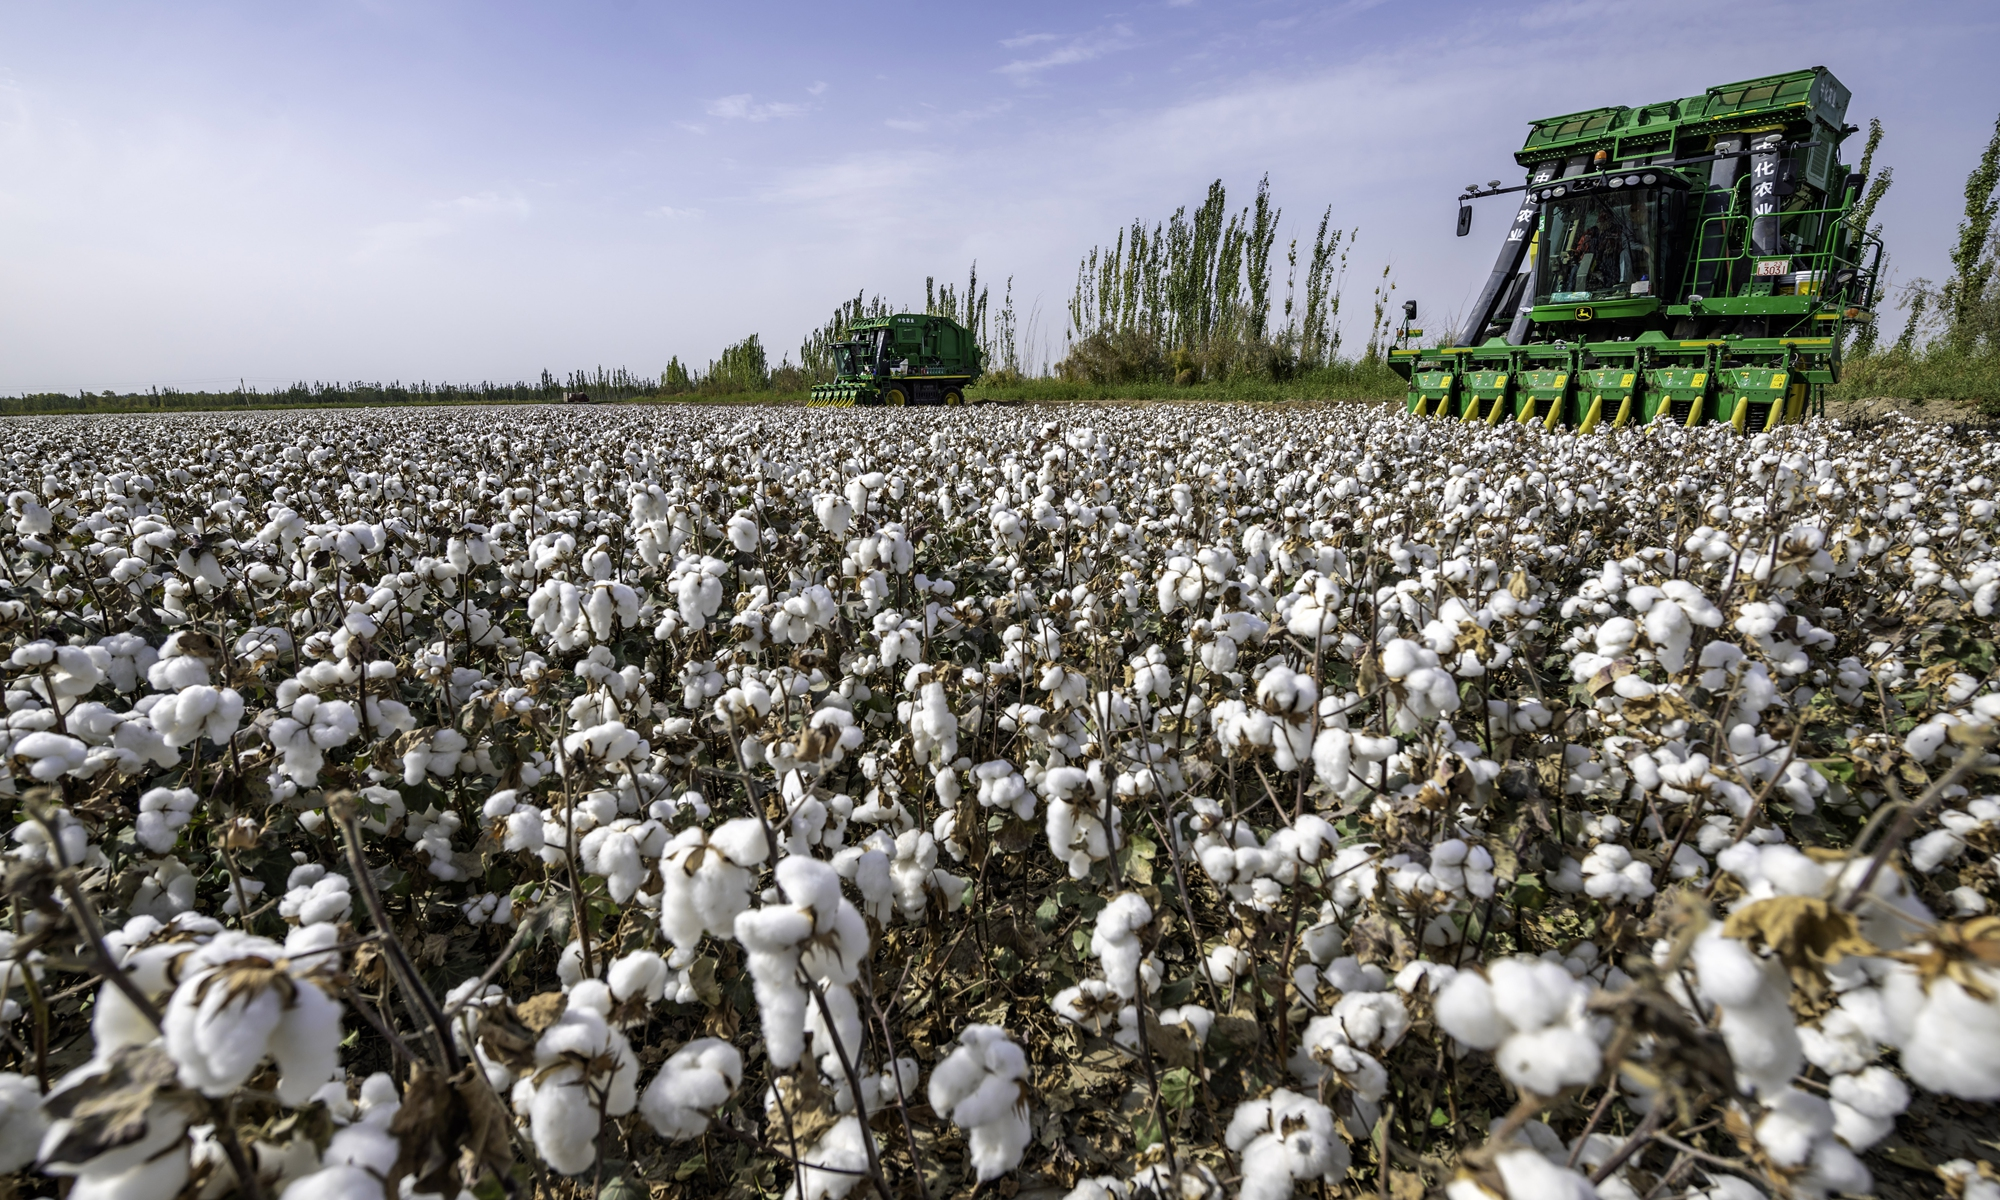 In a cotton-producing village in Bayingolin Mongolian Autonomous Prefecture, Northwest China's Xinjiang Uygur Autonomous Region, large-scale machines operate at full capacity to seize the harvest season on September 28, 2020. The total cotton plantation area in Xinjiang reached 24.19 million mu (1.6 million hectares) and around 16.90 million mu were harvested by machines in 2020, accounting for 70 percent of the plantation area. Photo: VCG